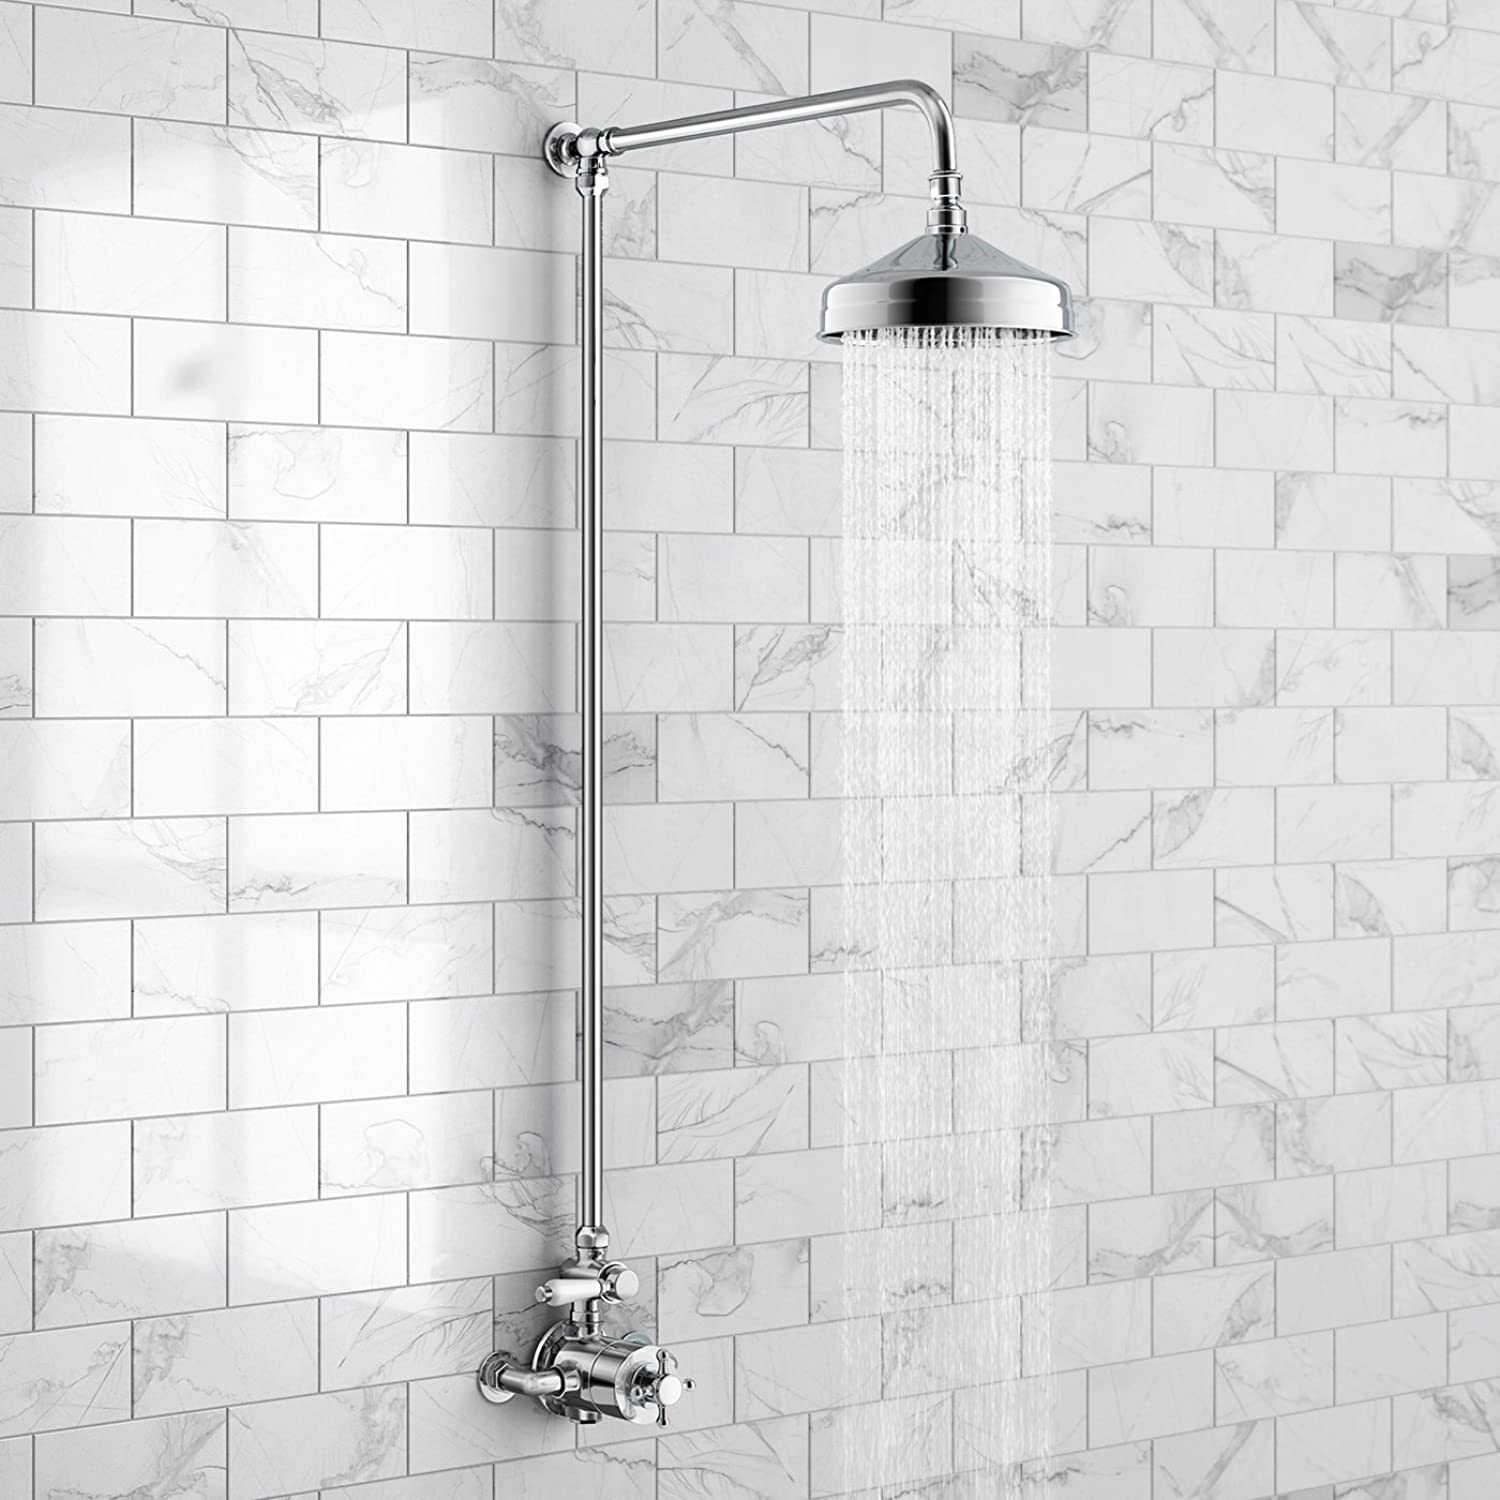 IBathUK Traditional Thermostatic Exposed Mixer Shower Set Chrome 200mm round Adjustable Head